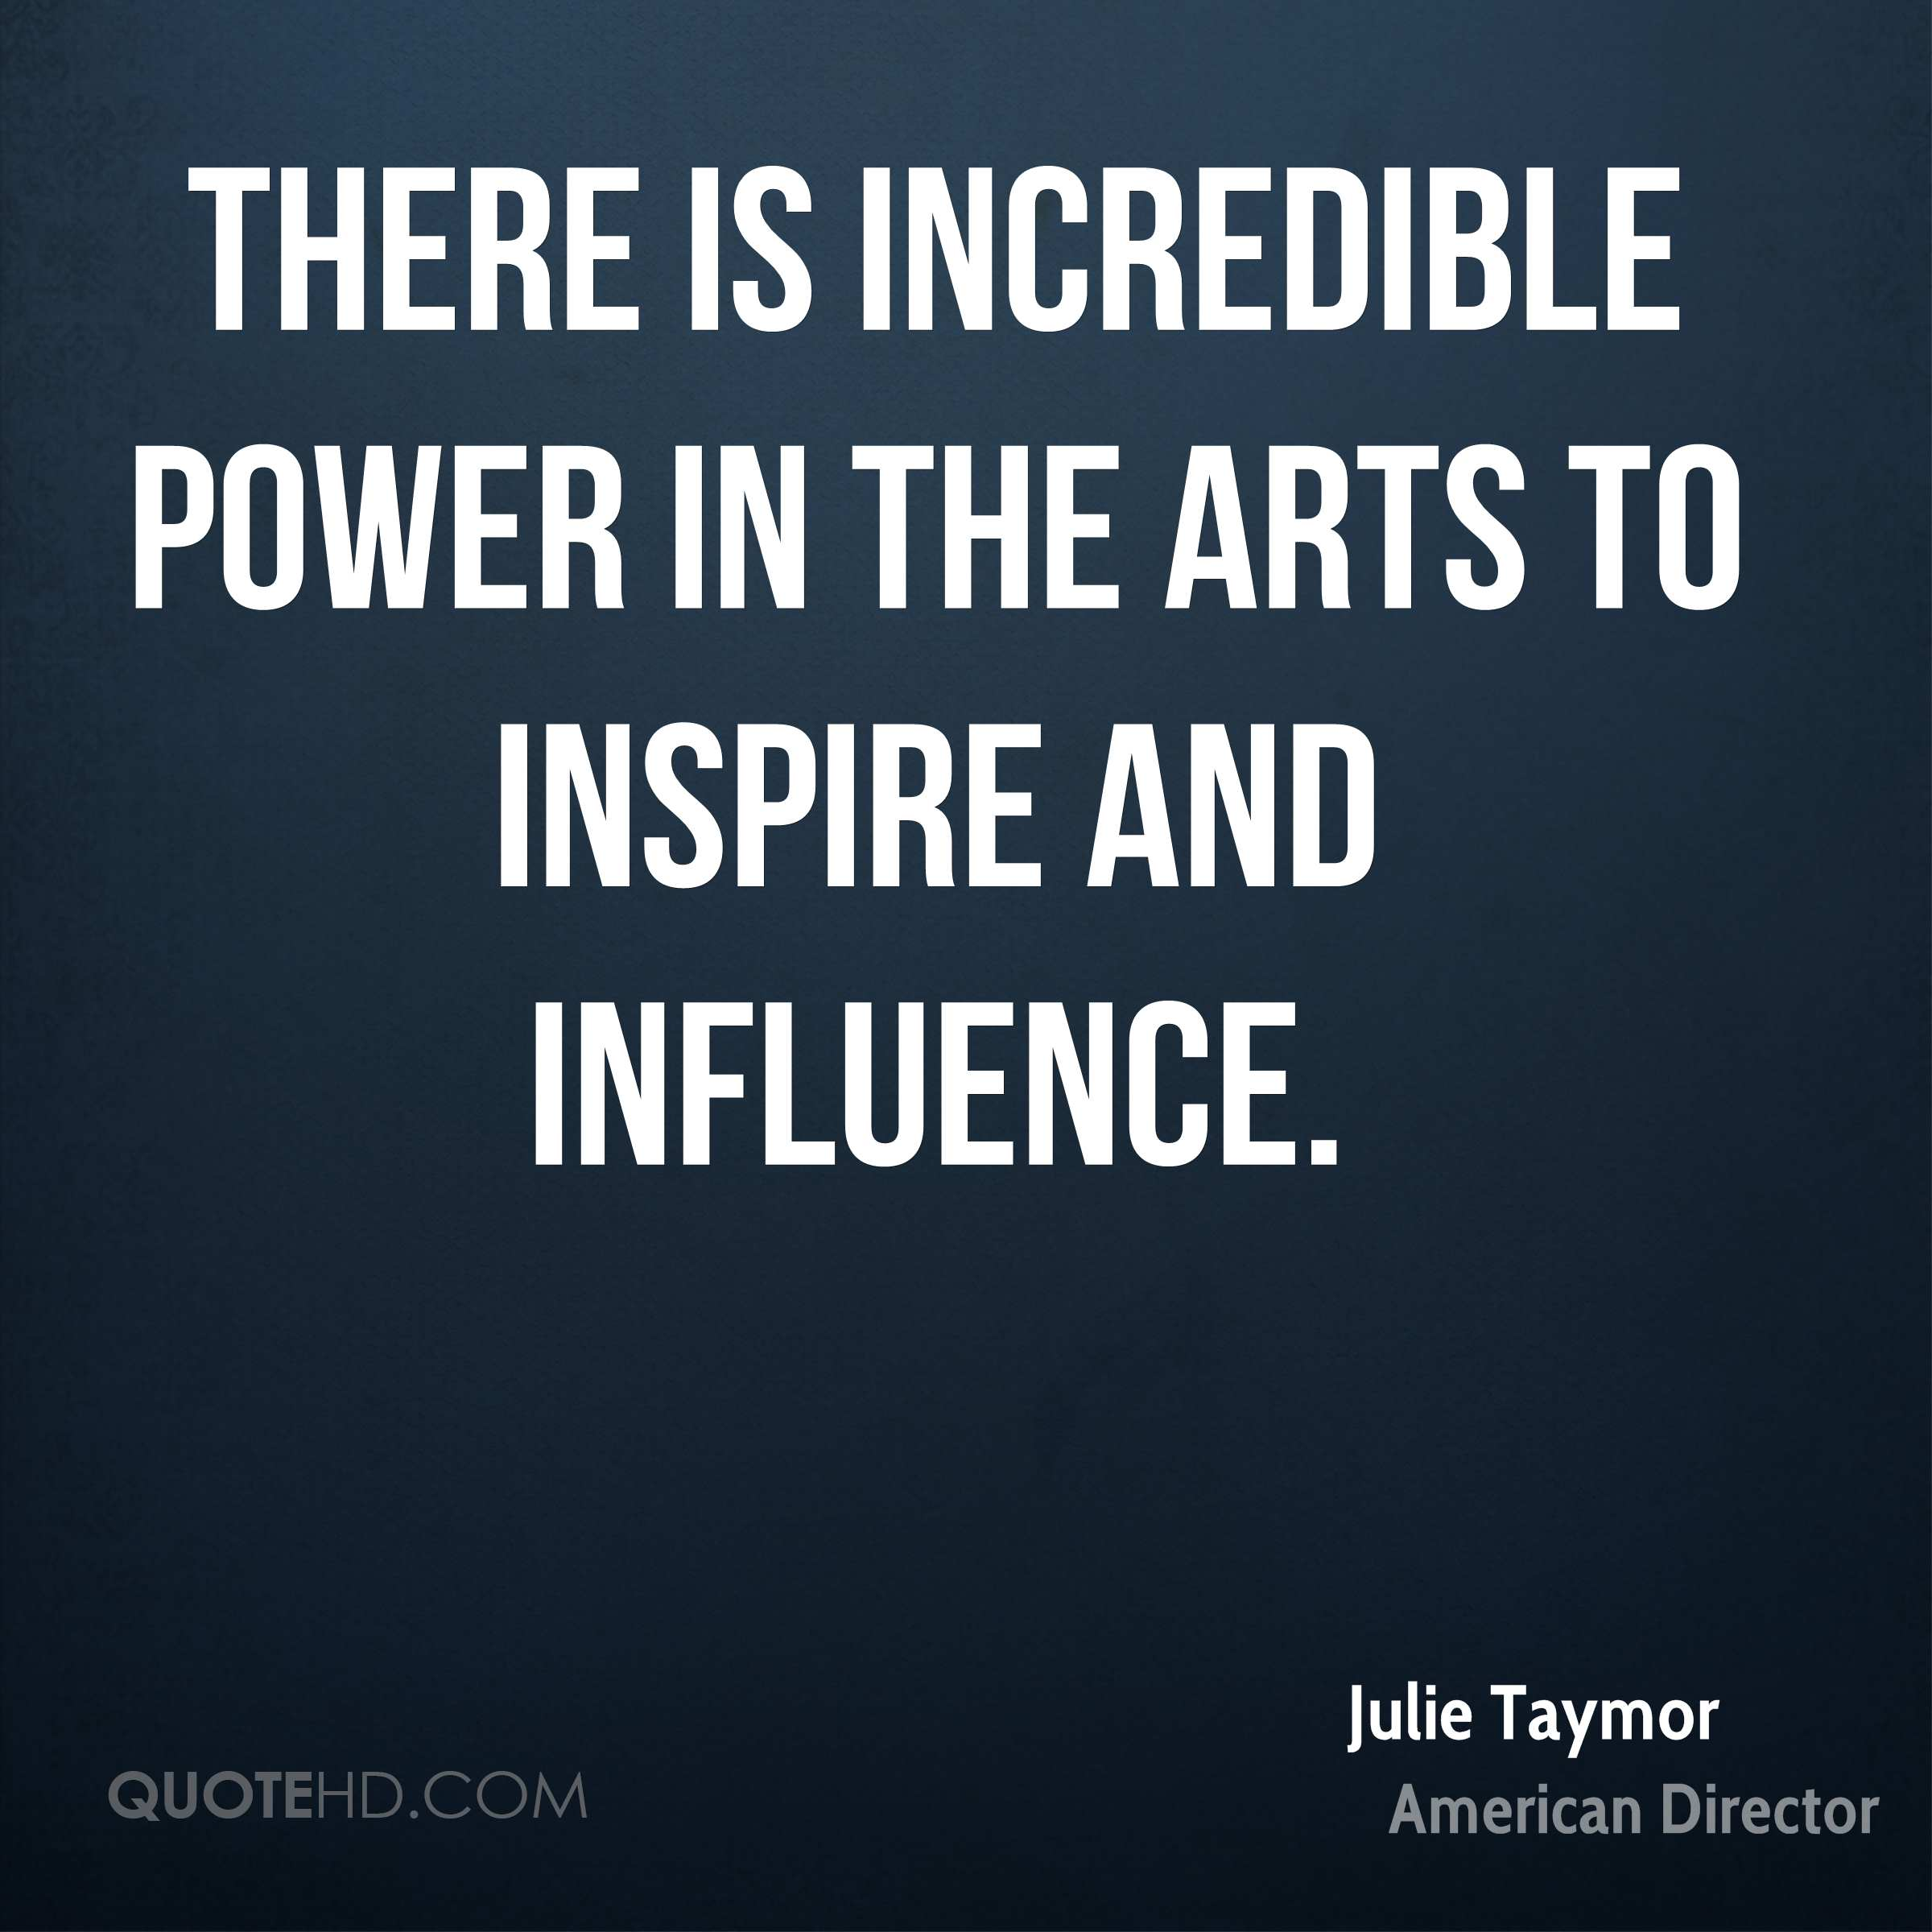 There is incredible power in the arts to inspire and influence.